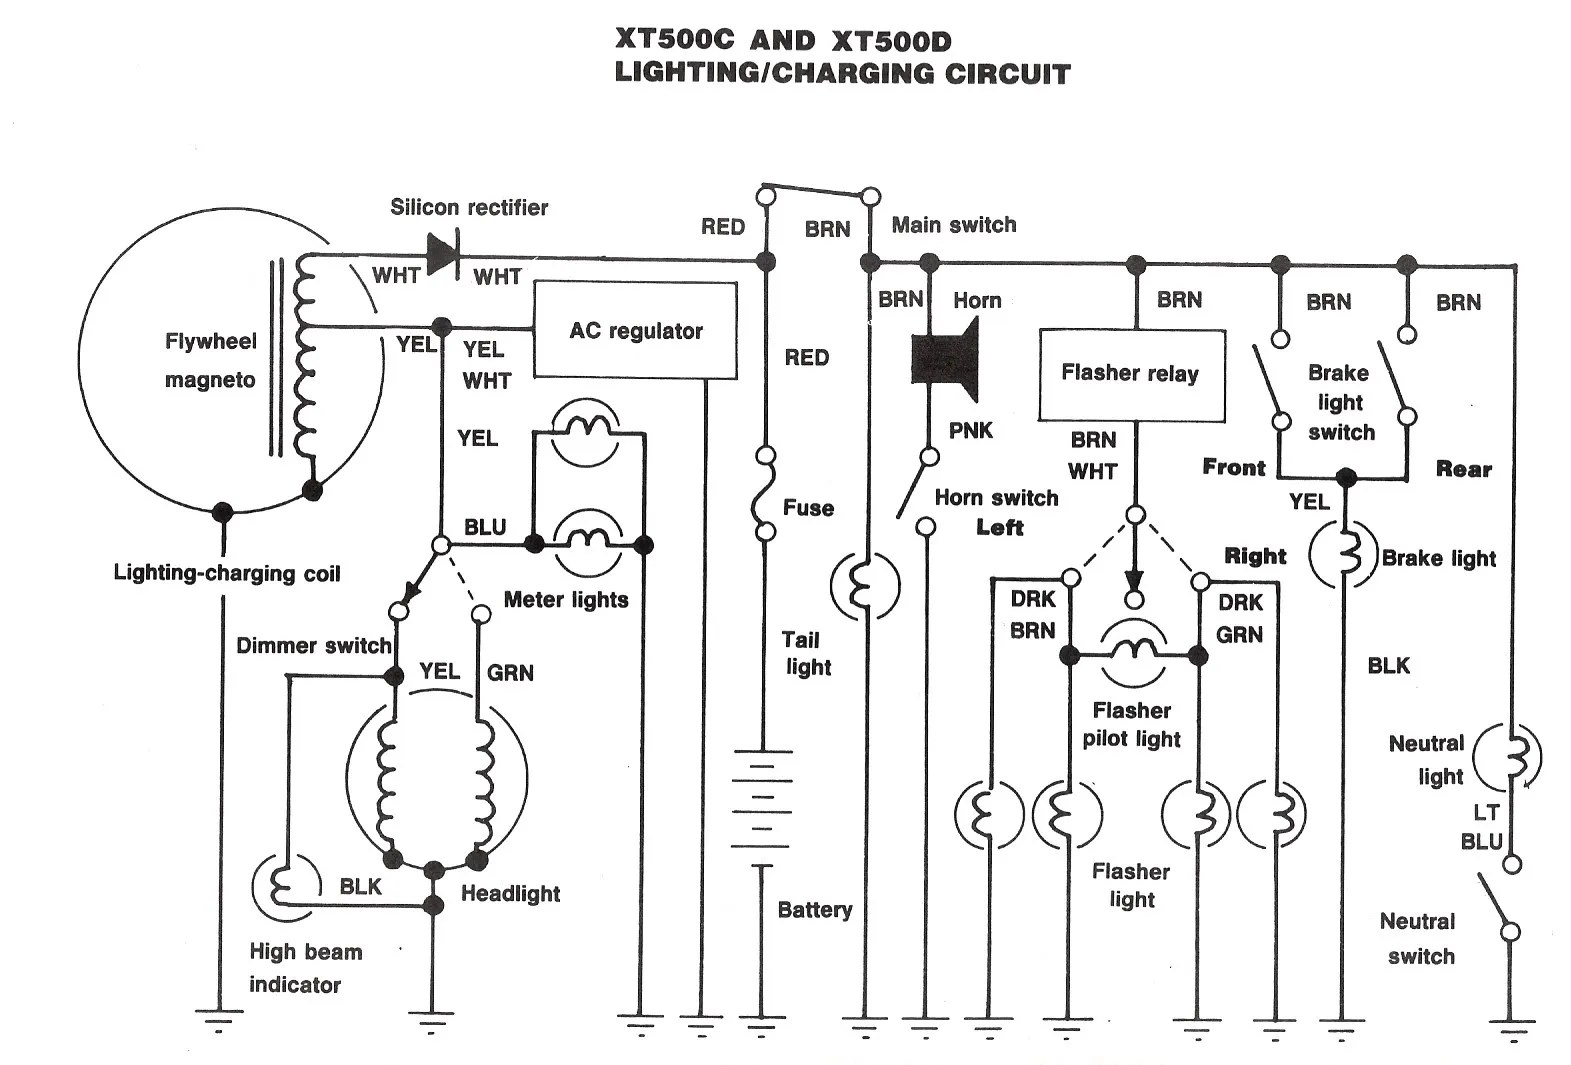 Yamaha Tt500 Wiring Diagram Apktodownload